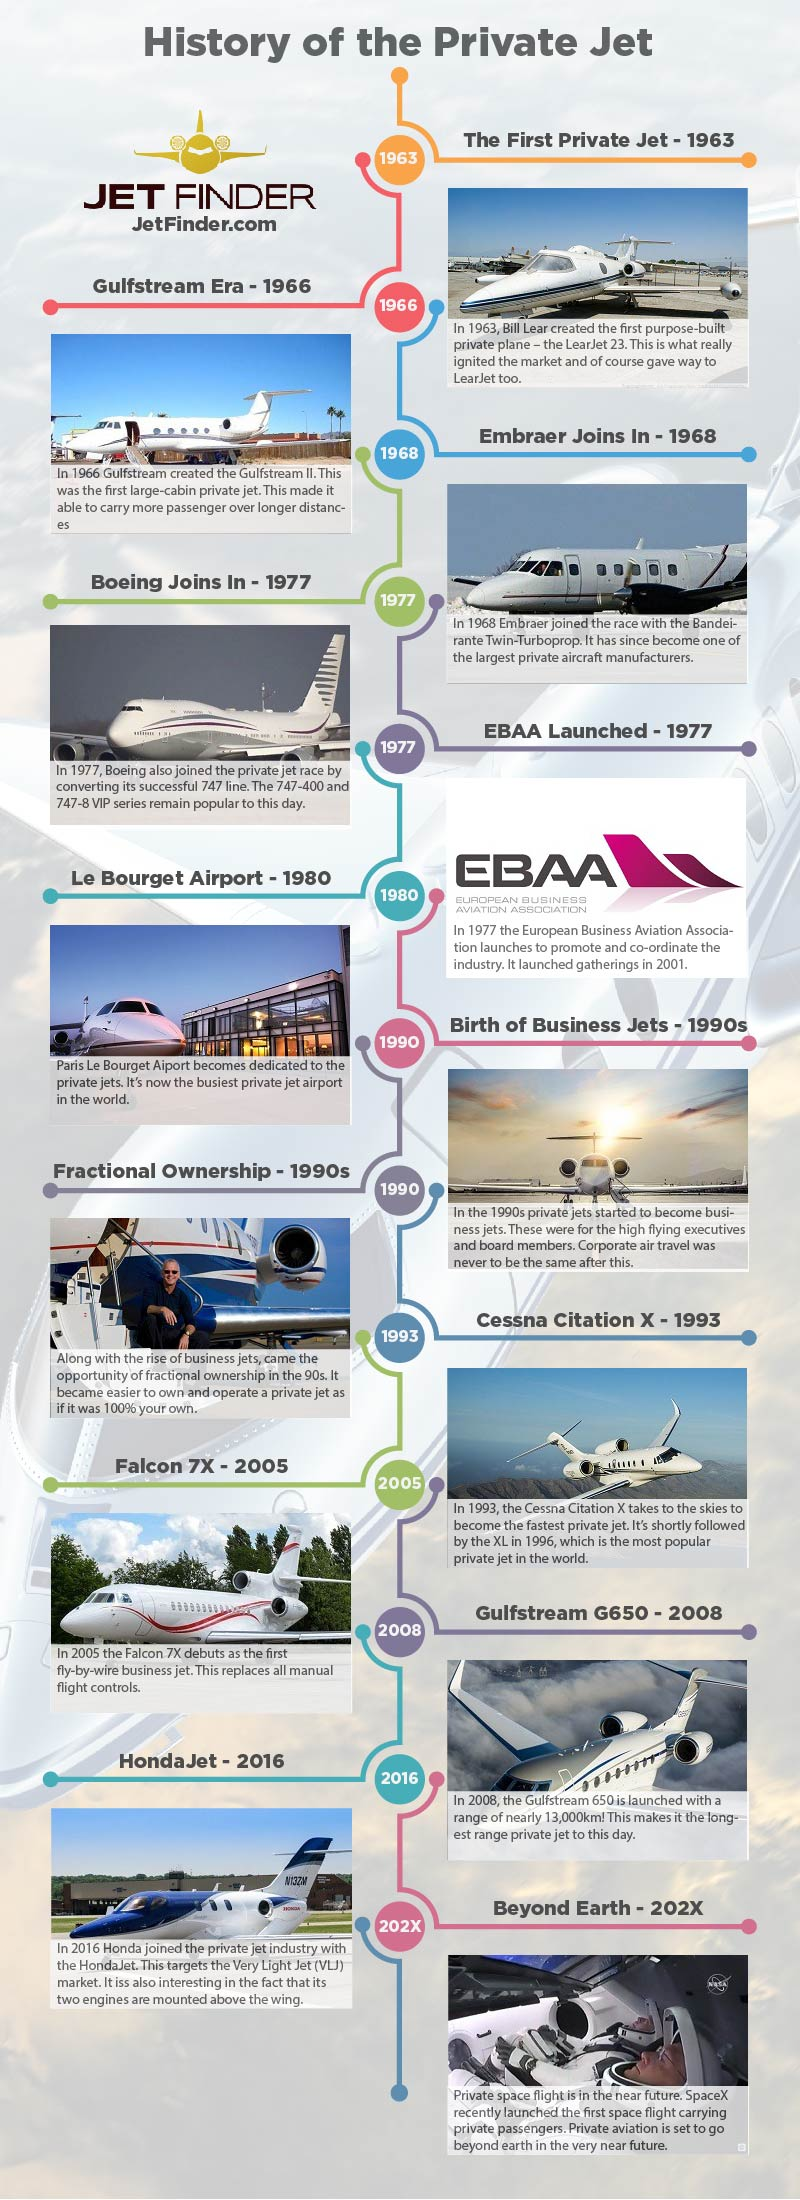 History-of-the-Private-Jet-Infographic-plaza